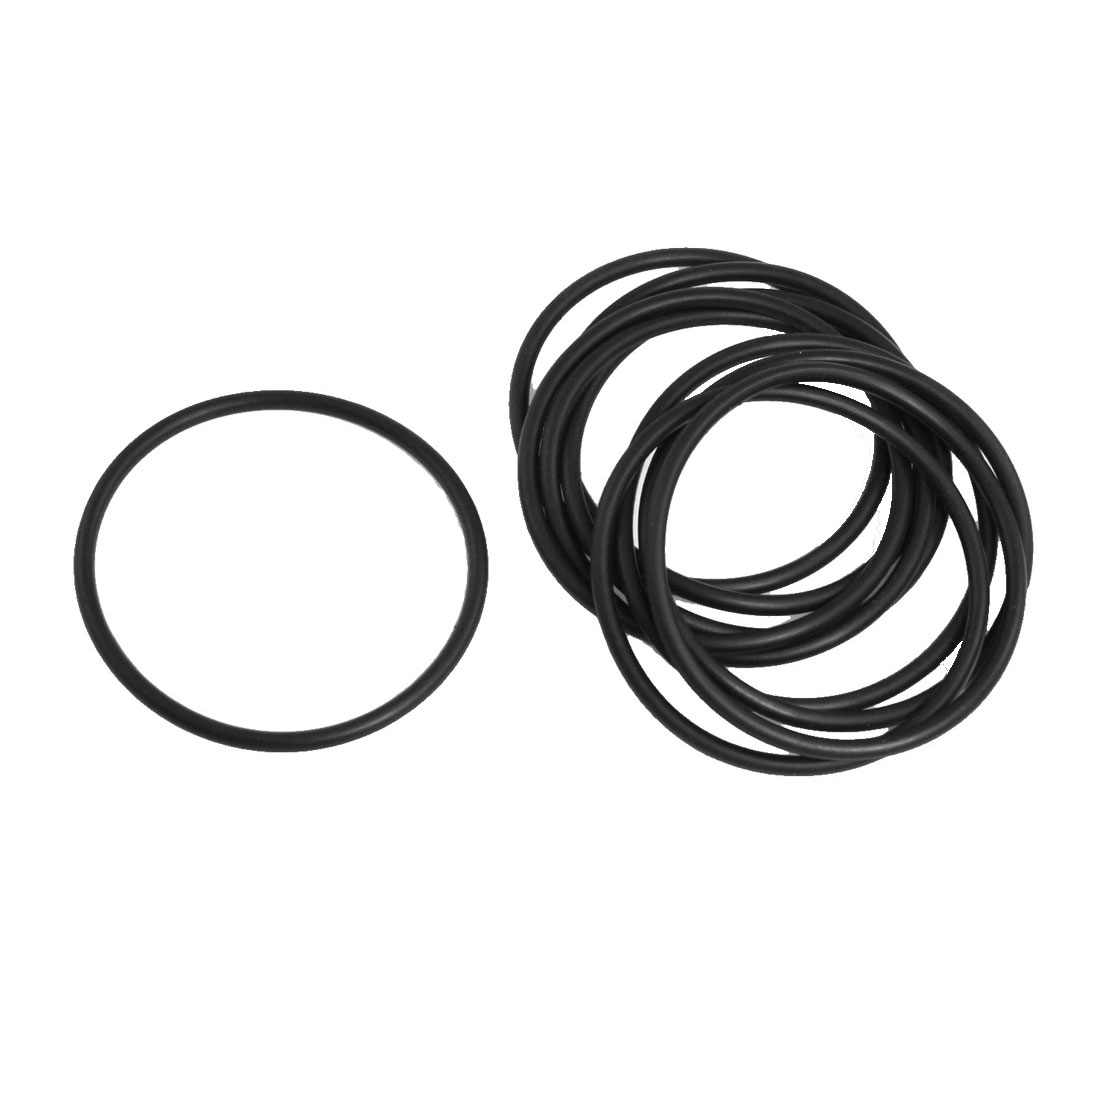 10x Black 60mm OD 54mm Inner Dia Nitrile Rubber O-ring Oil Seal Gaskets